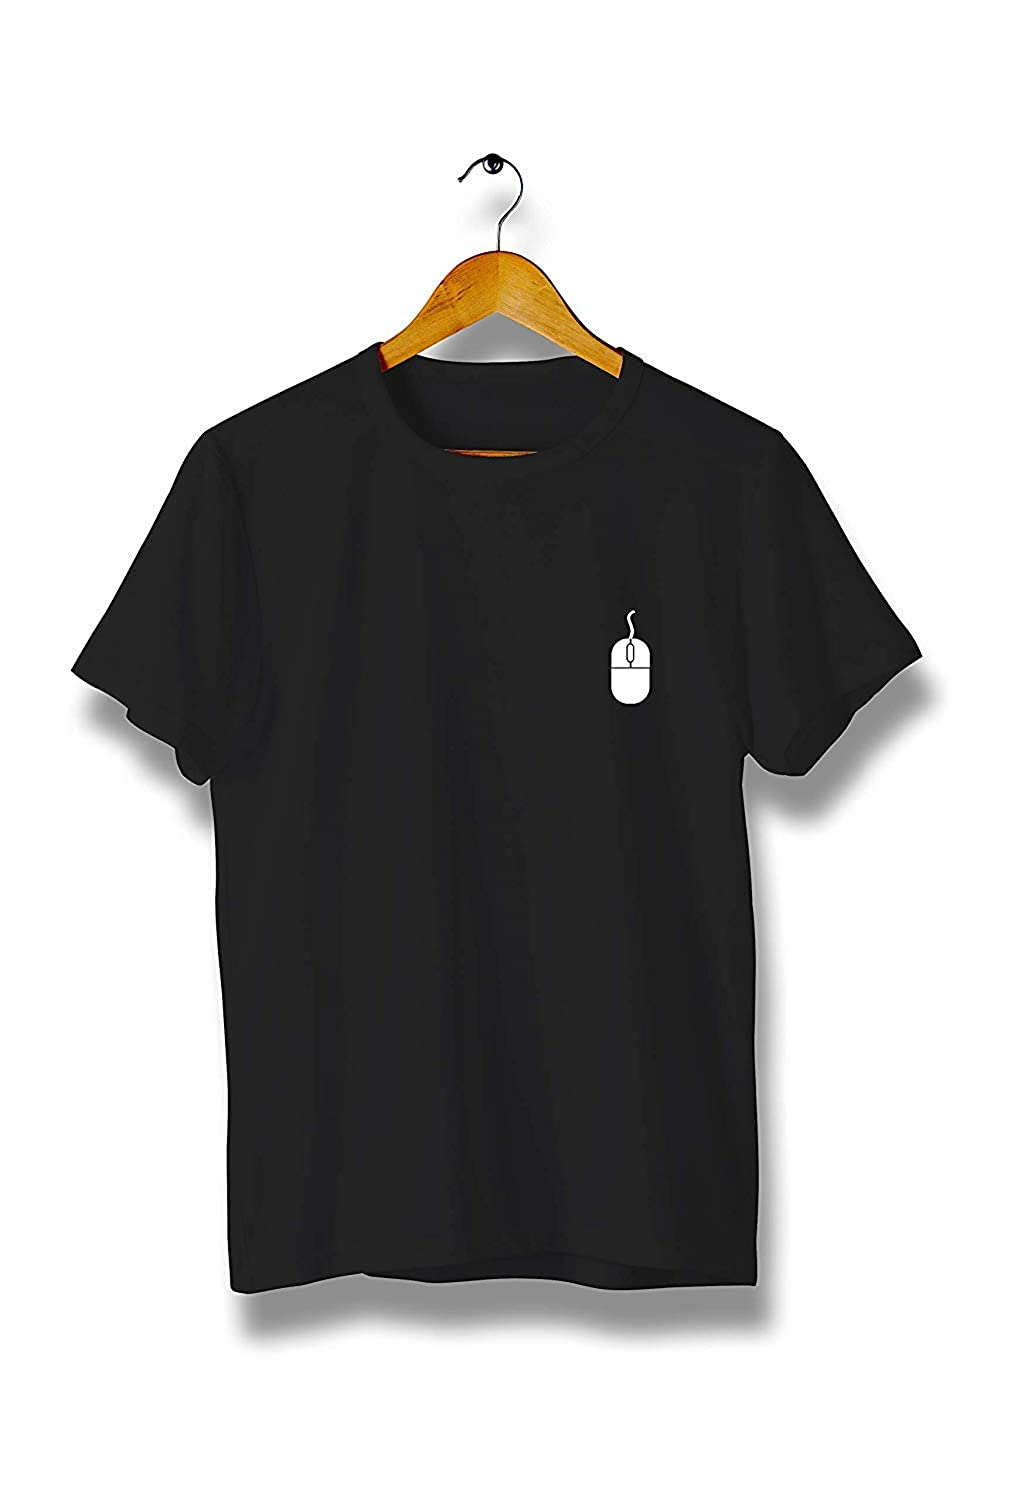 Modern Cool Tees for Men Y161 Mouse Computer T-Shirt